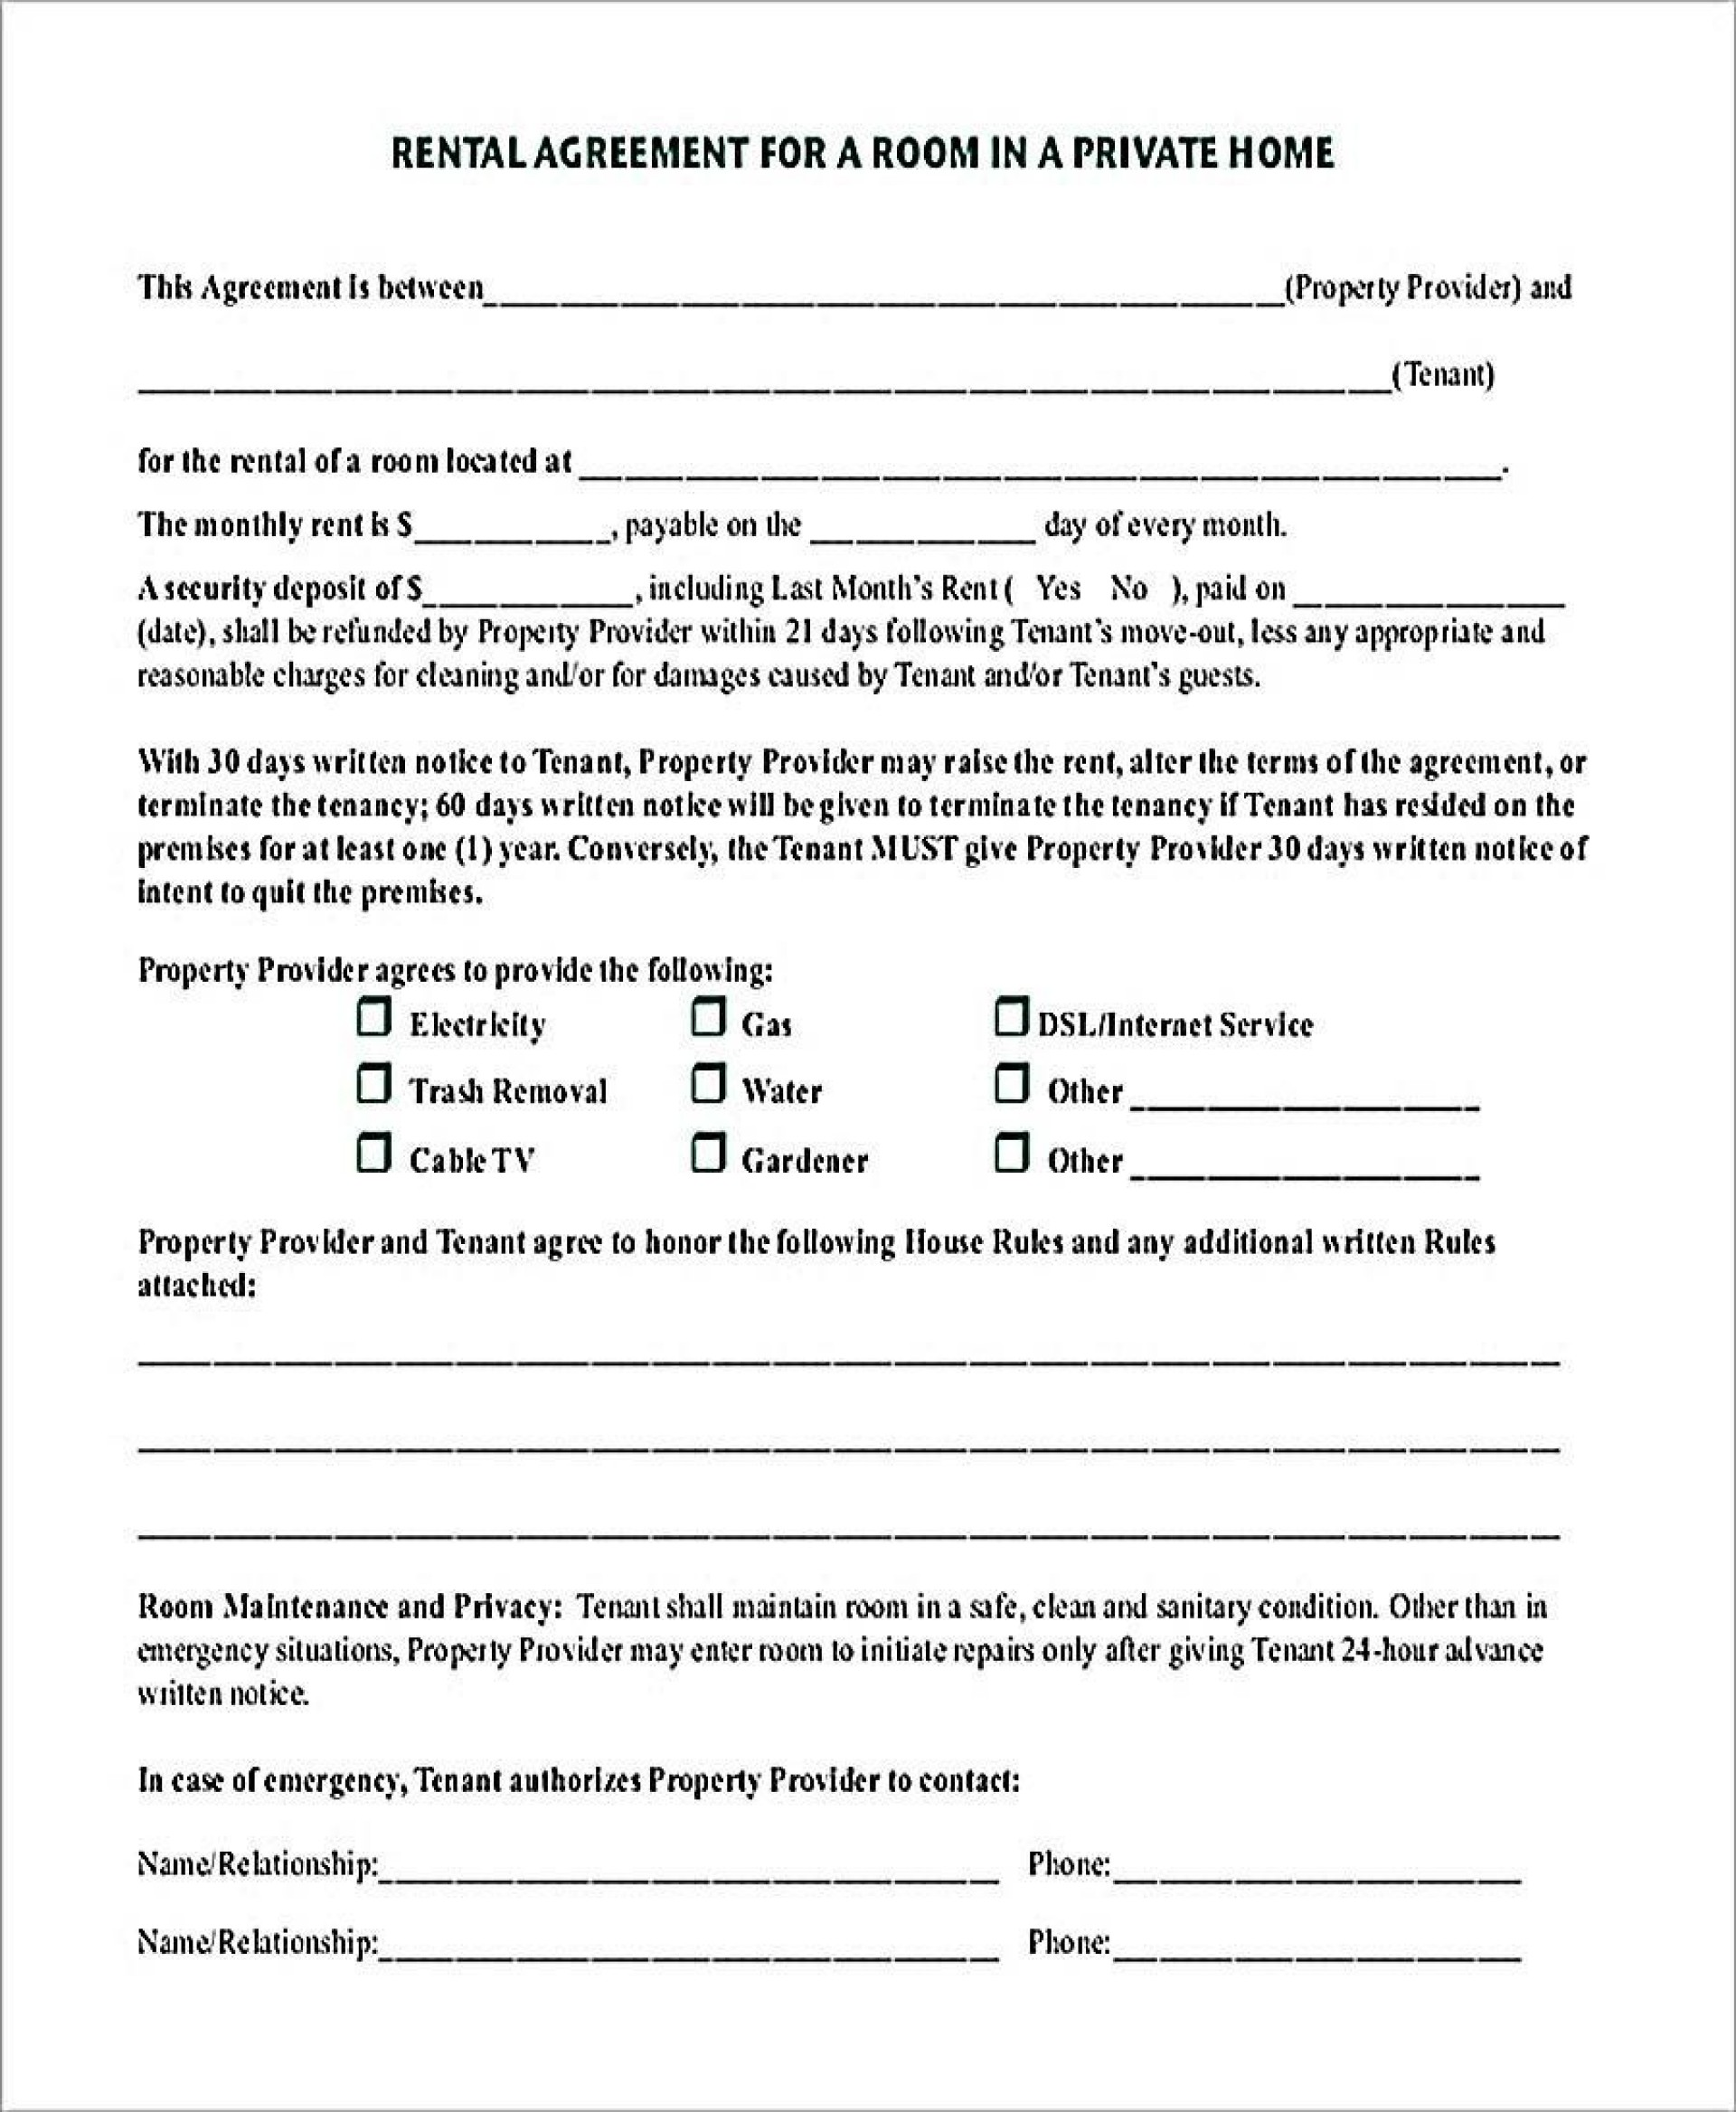 000 Stirring Rental Agreement Template Word South Africa Sample  Room Doc Application Form1920